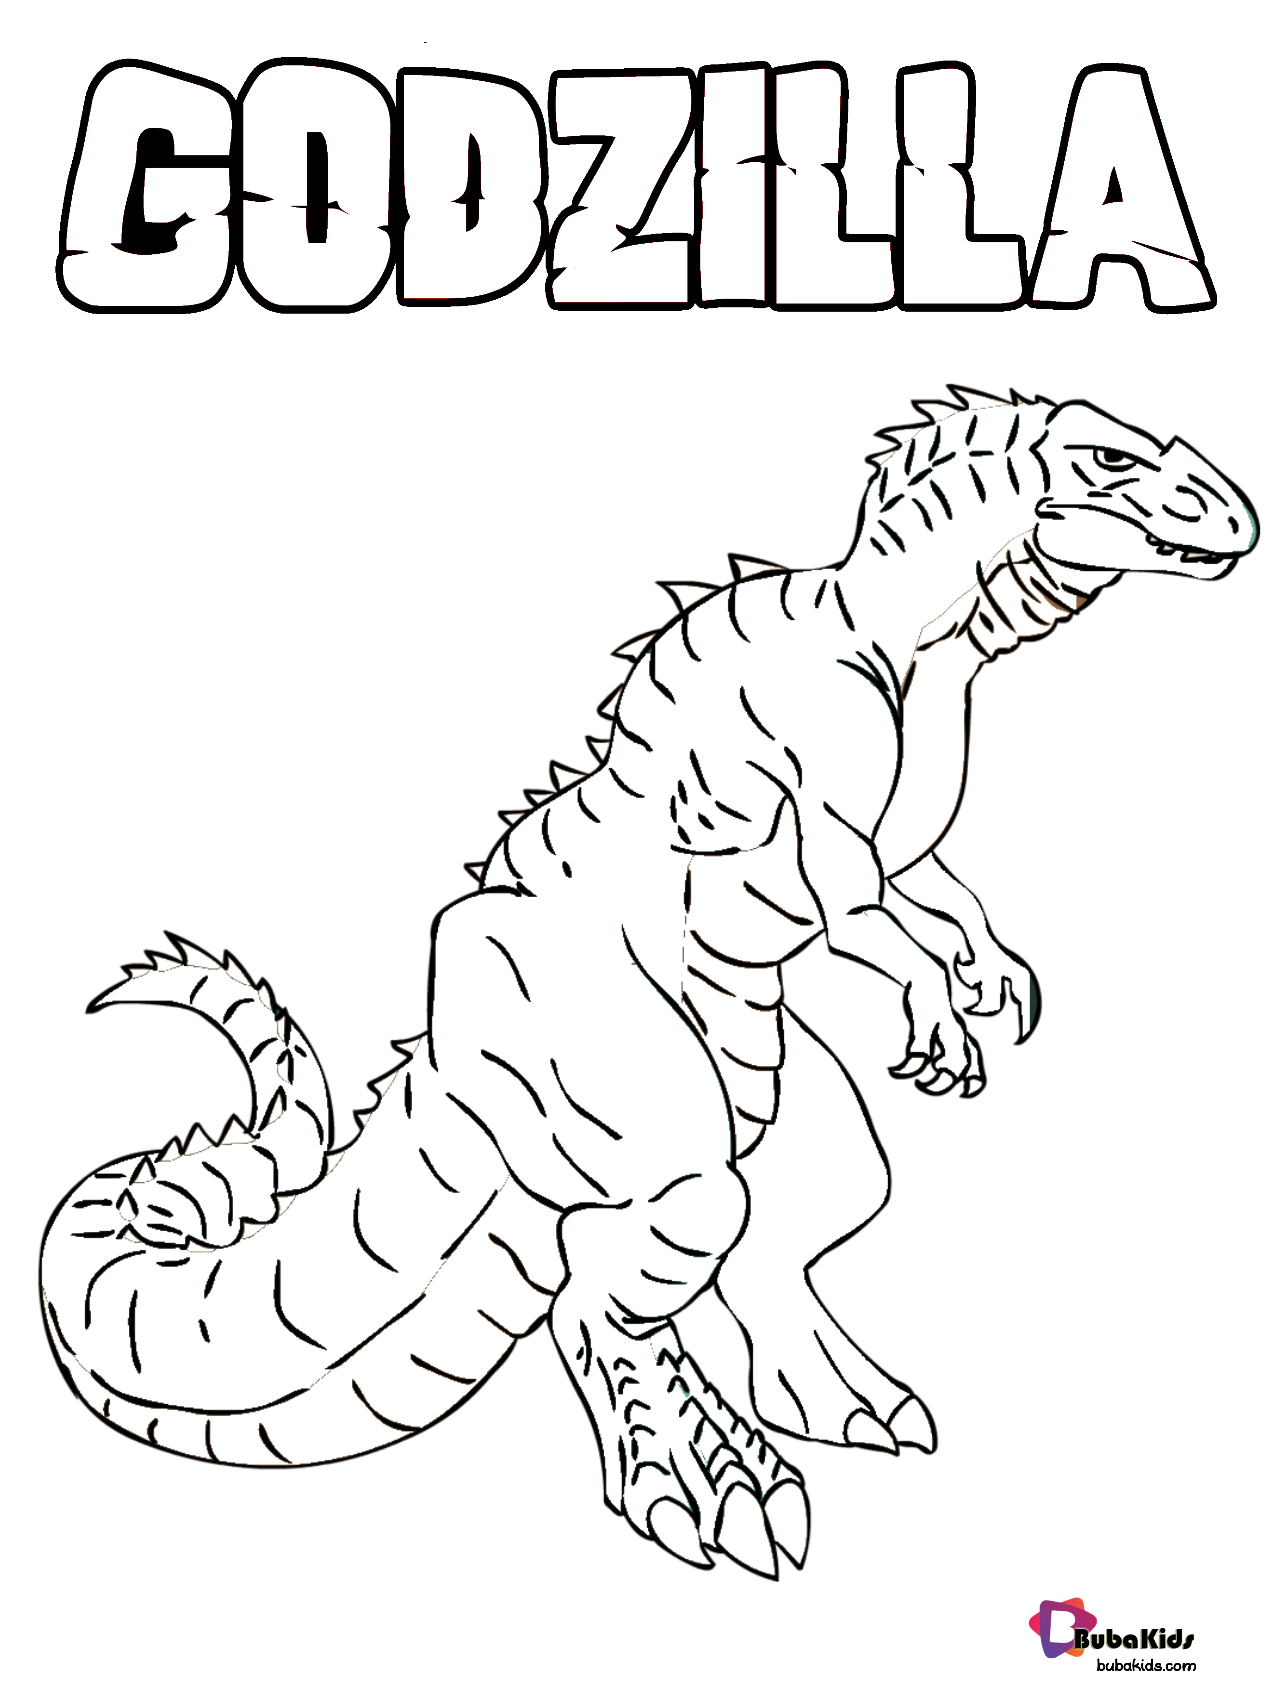 Godzilla King Of The Monsters Coloring Page Godzilla Monster Godzilla Monster Cartoon Colo Monster Coloring Pages Coloring Pages Cartoon Coloring Pages